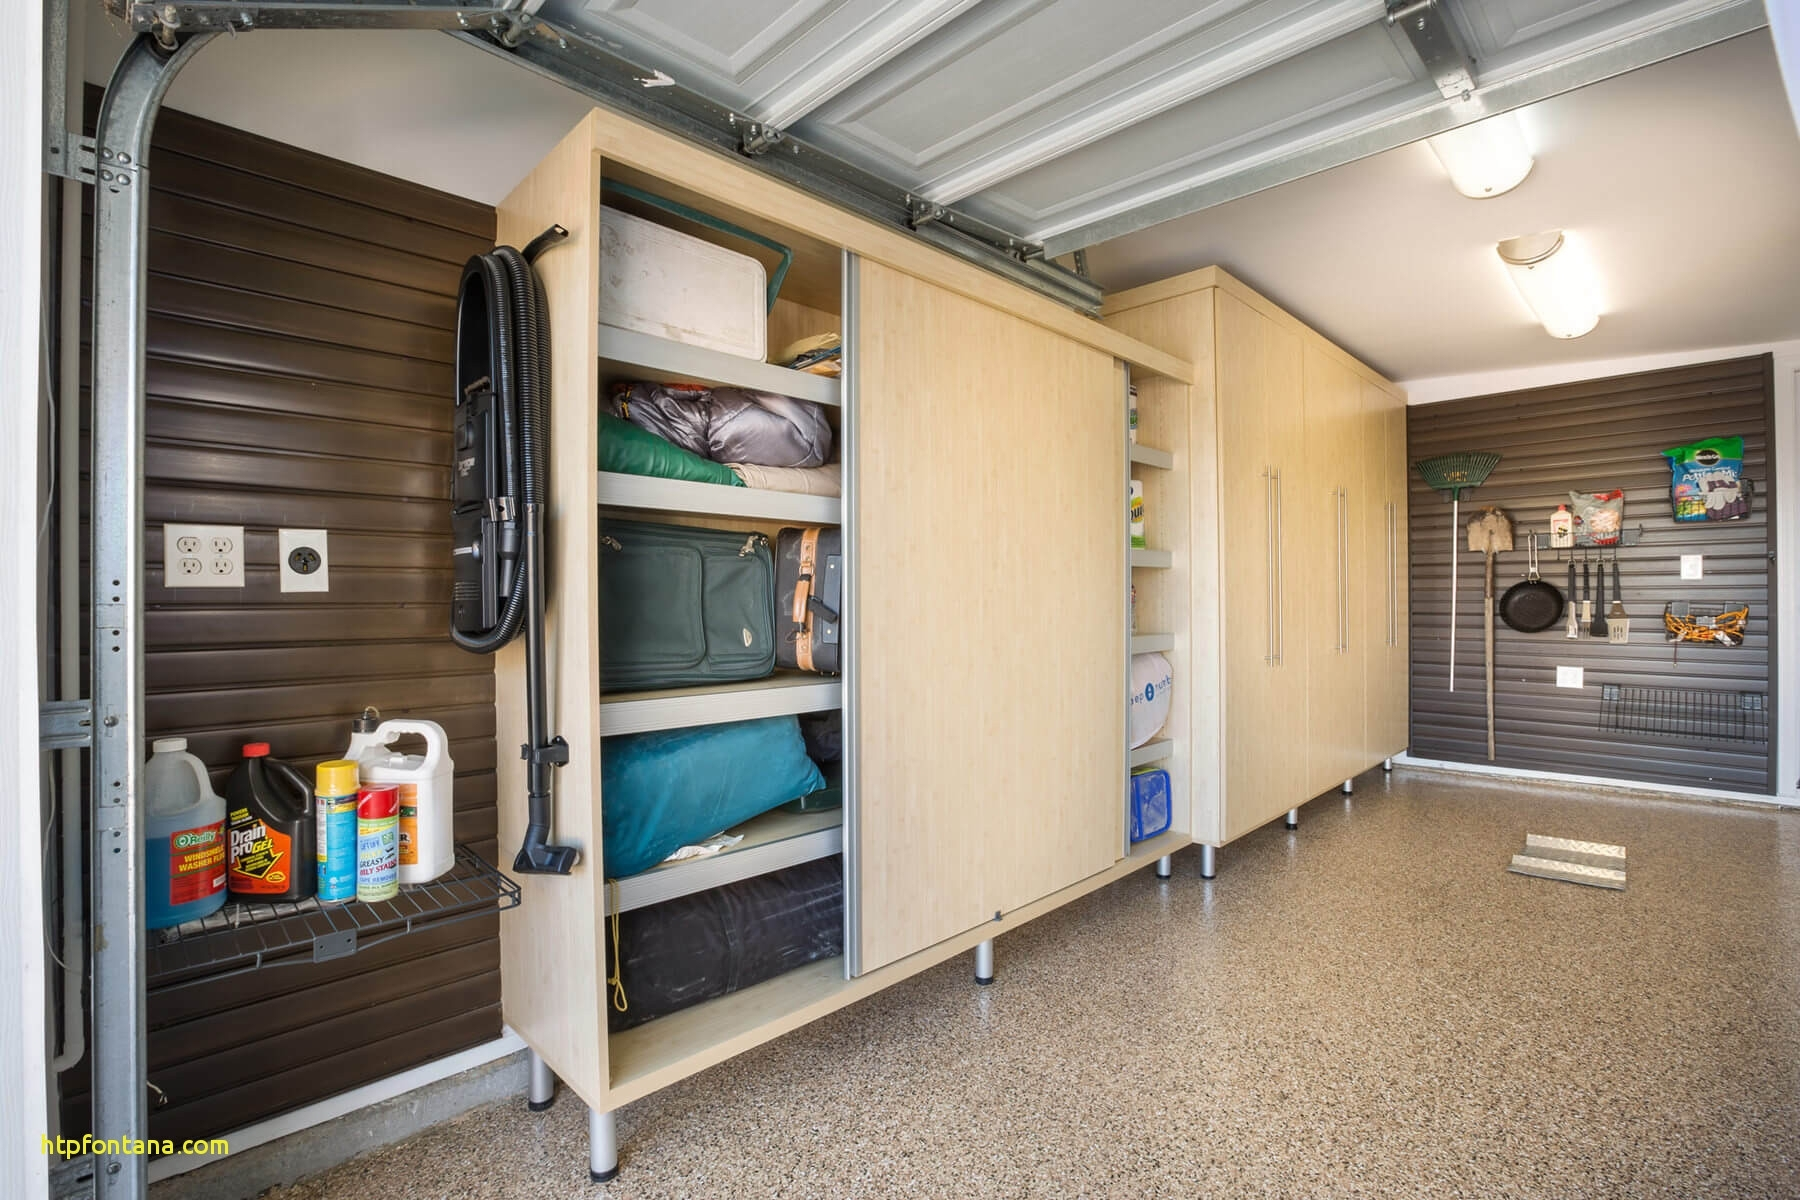 Stupendous Build Garage Storage Cabinet With Sliding Doors Madison Home Interior And Landscaping Spoatsignezvosmurscom